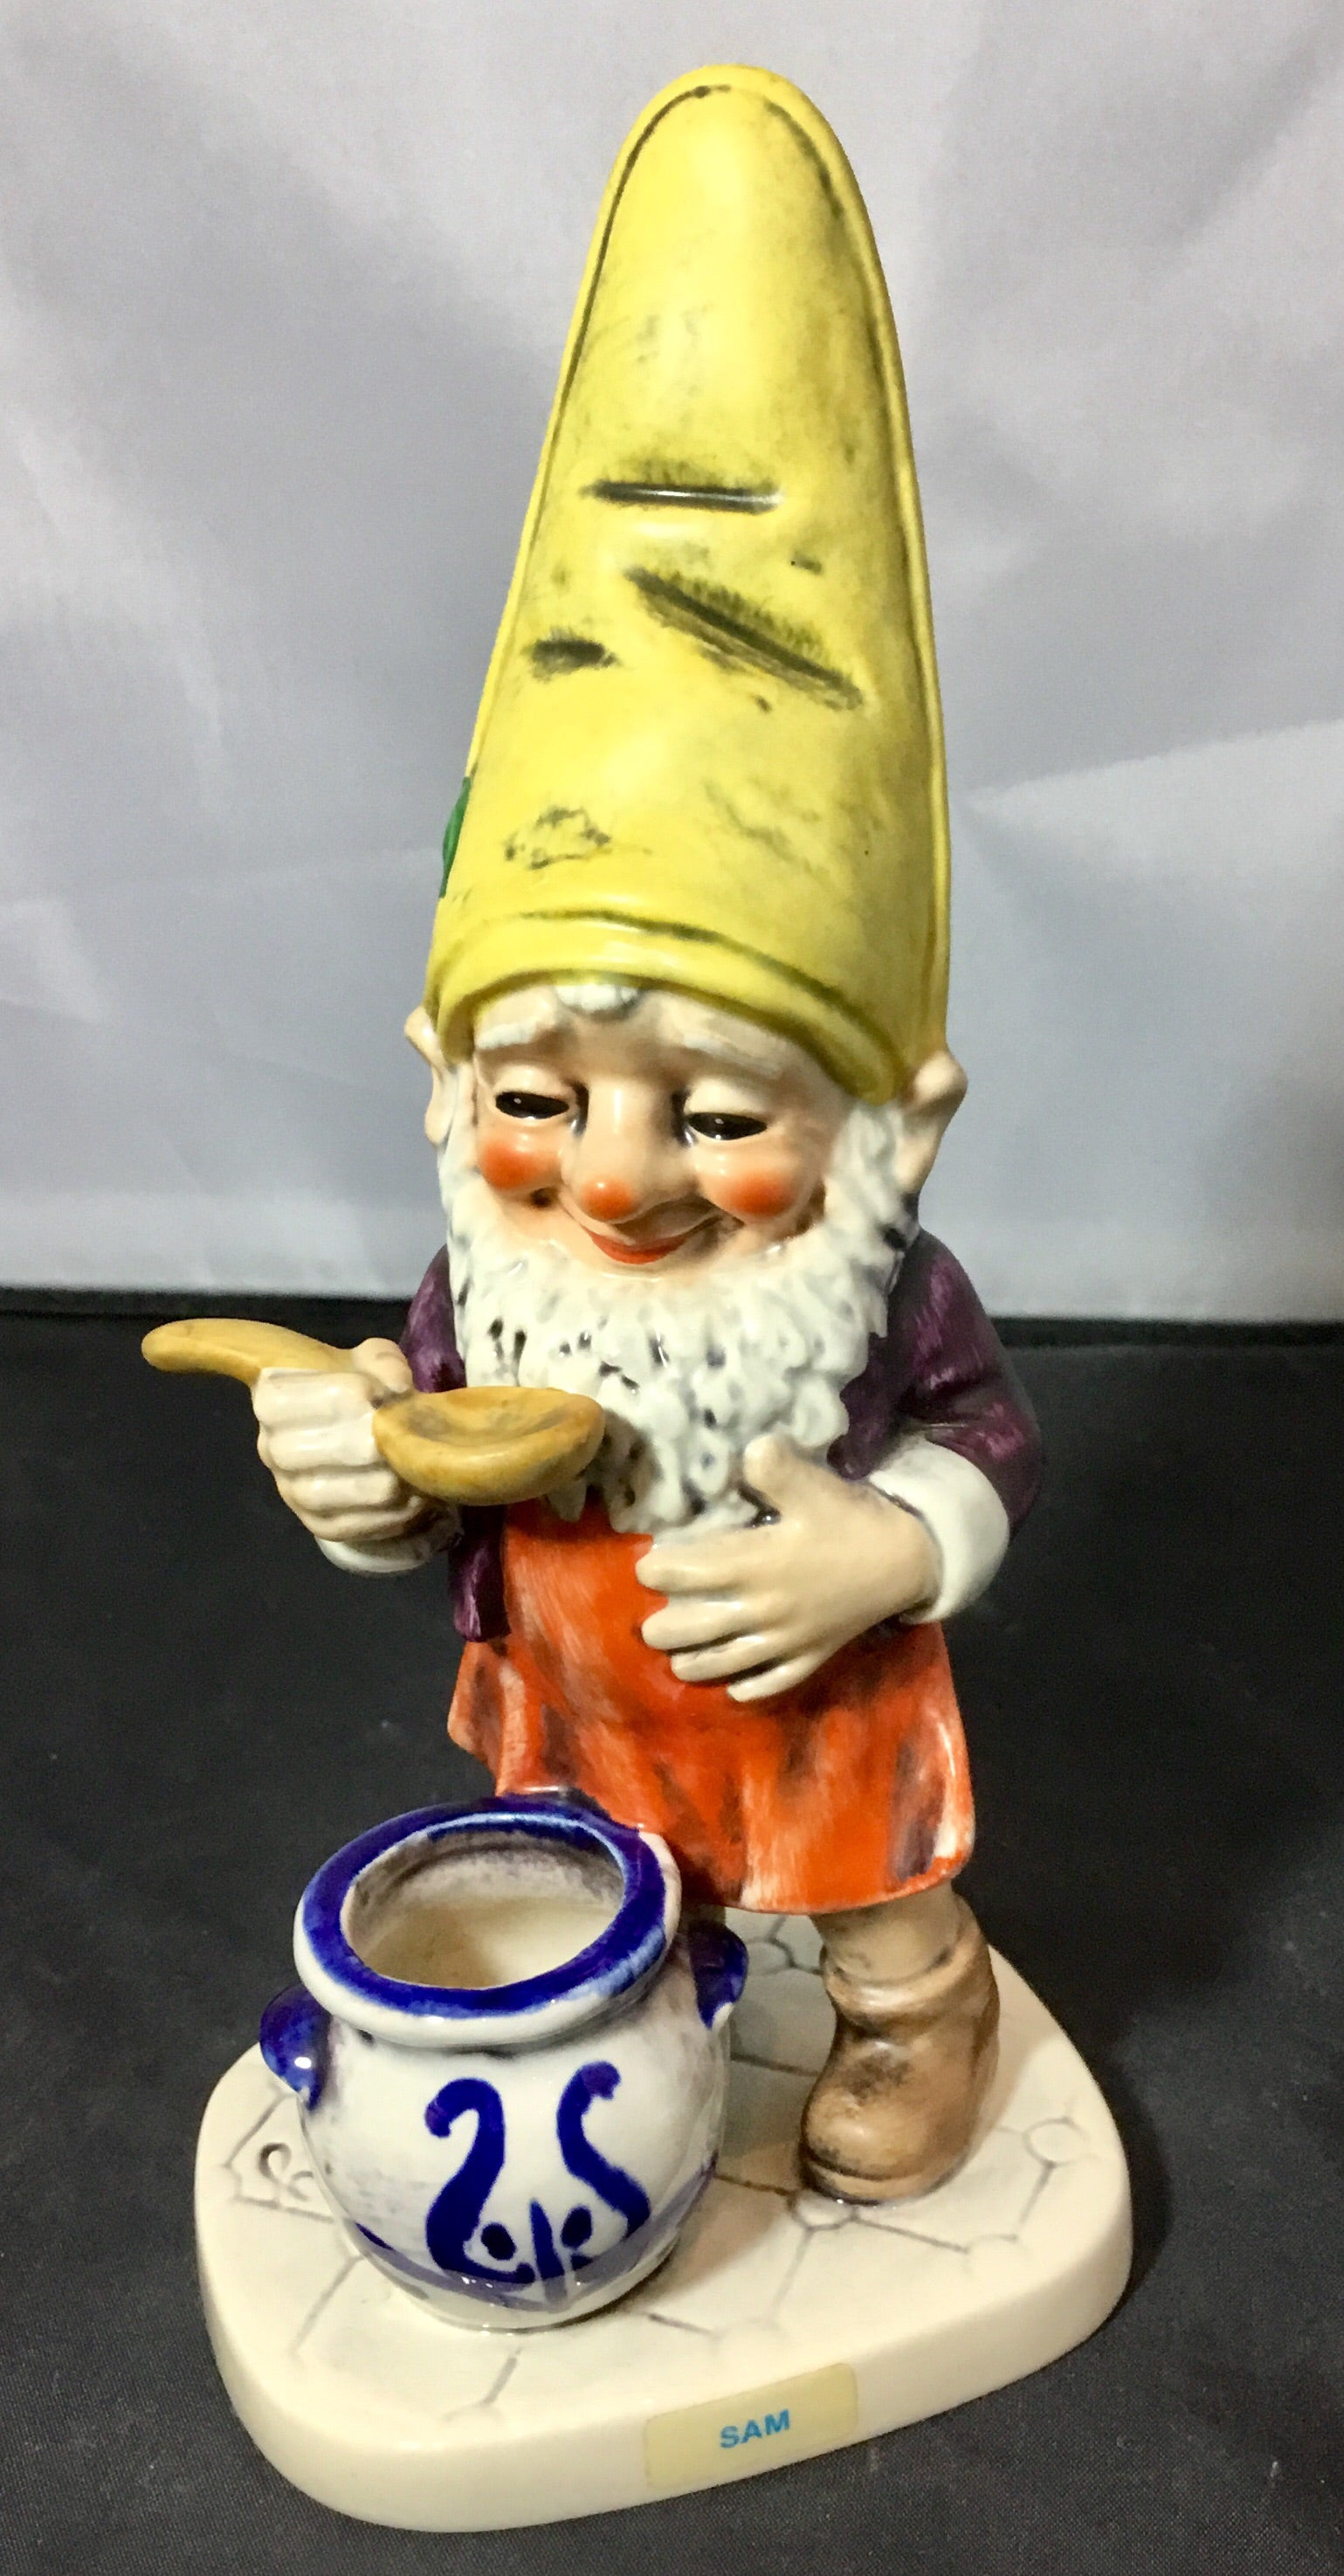 Goebel Gnome, Sam the Cook